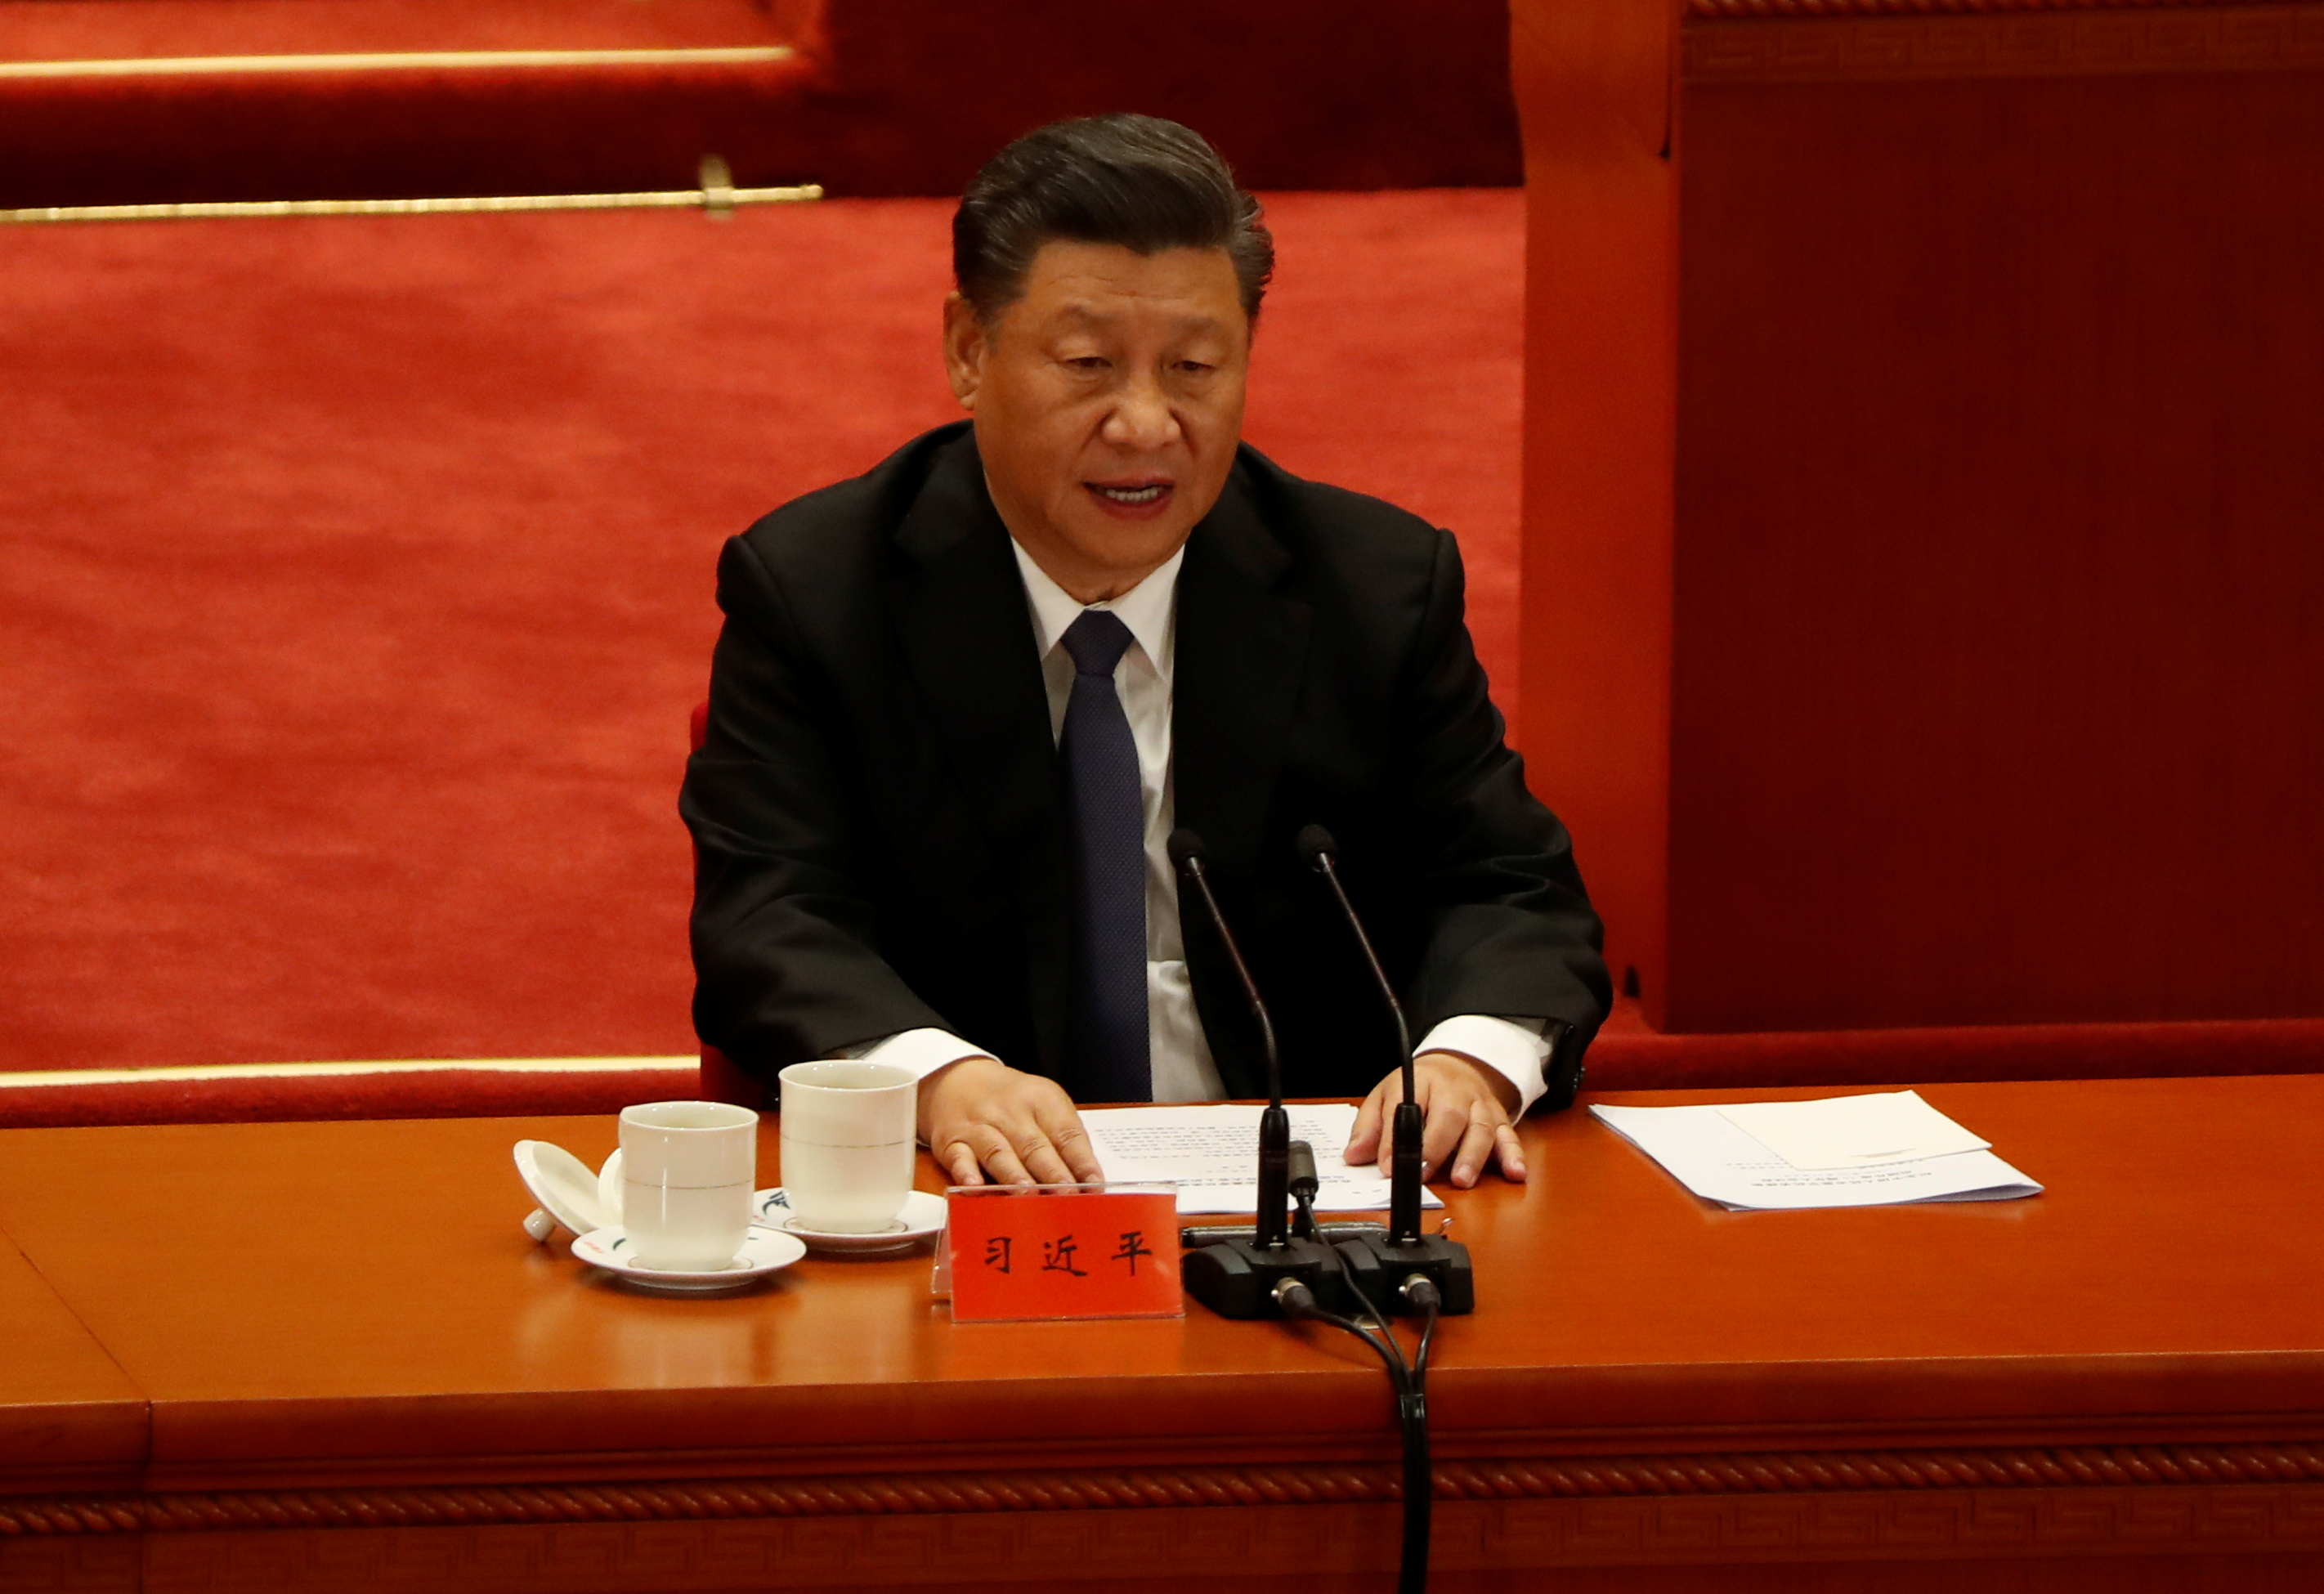 China's President Xi Jinping speaks while taking part in an event marking the 70th anniversary of the Chinese People's Volunteer Army's participation in the Korean War at the Great Hall of the People in Beijing, China October 23, 2020. REUTERS/Carlos Garcia Rawlins